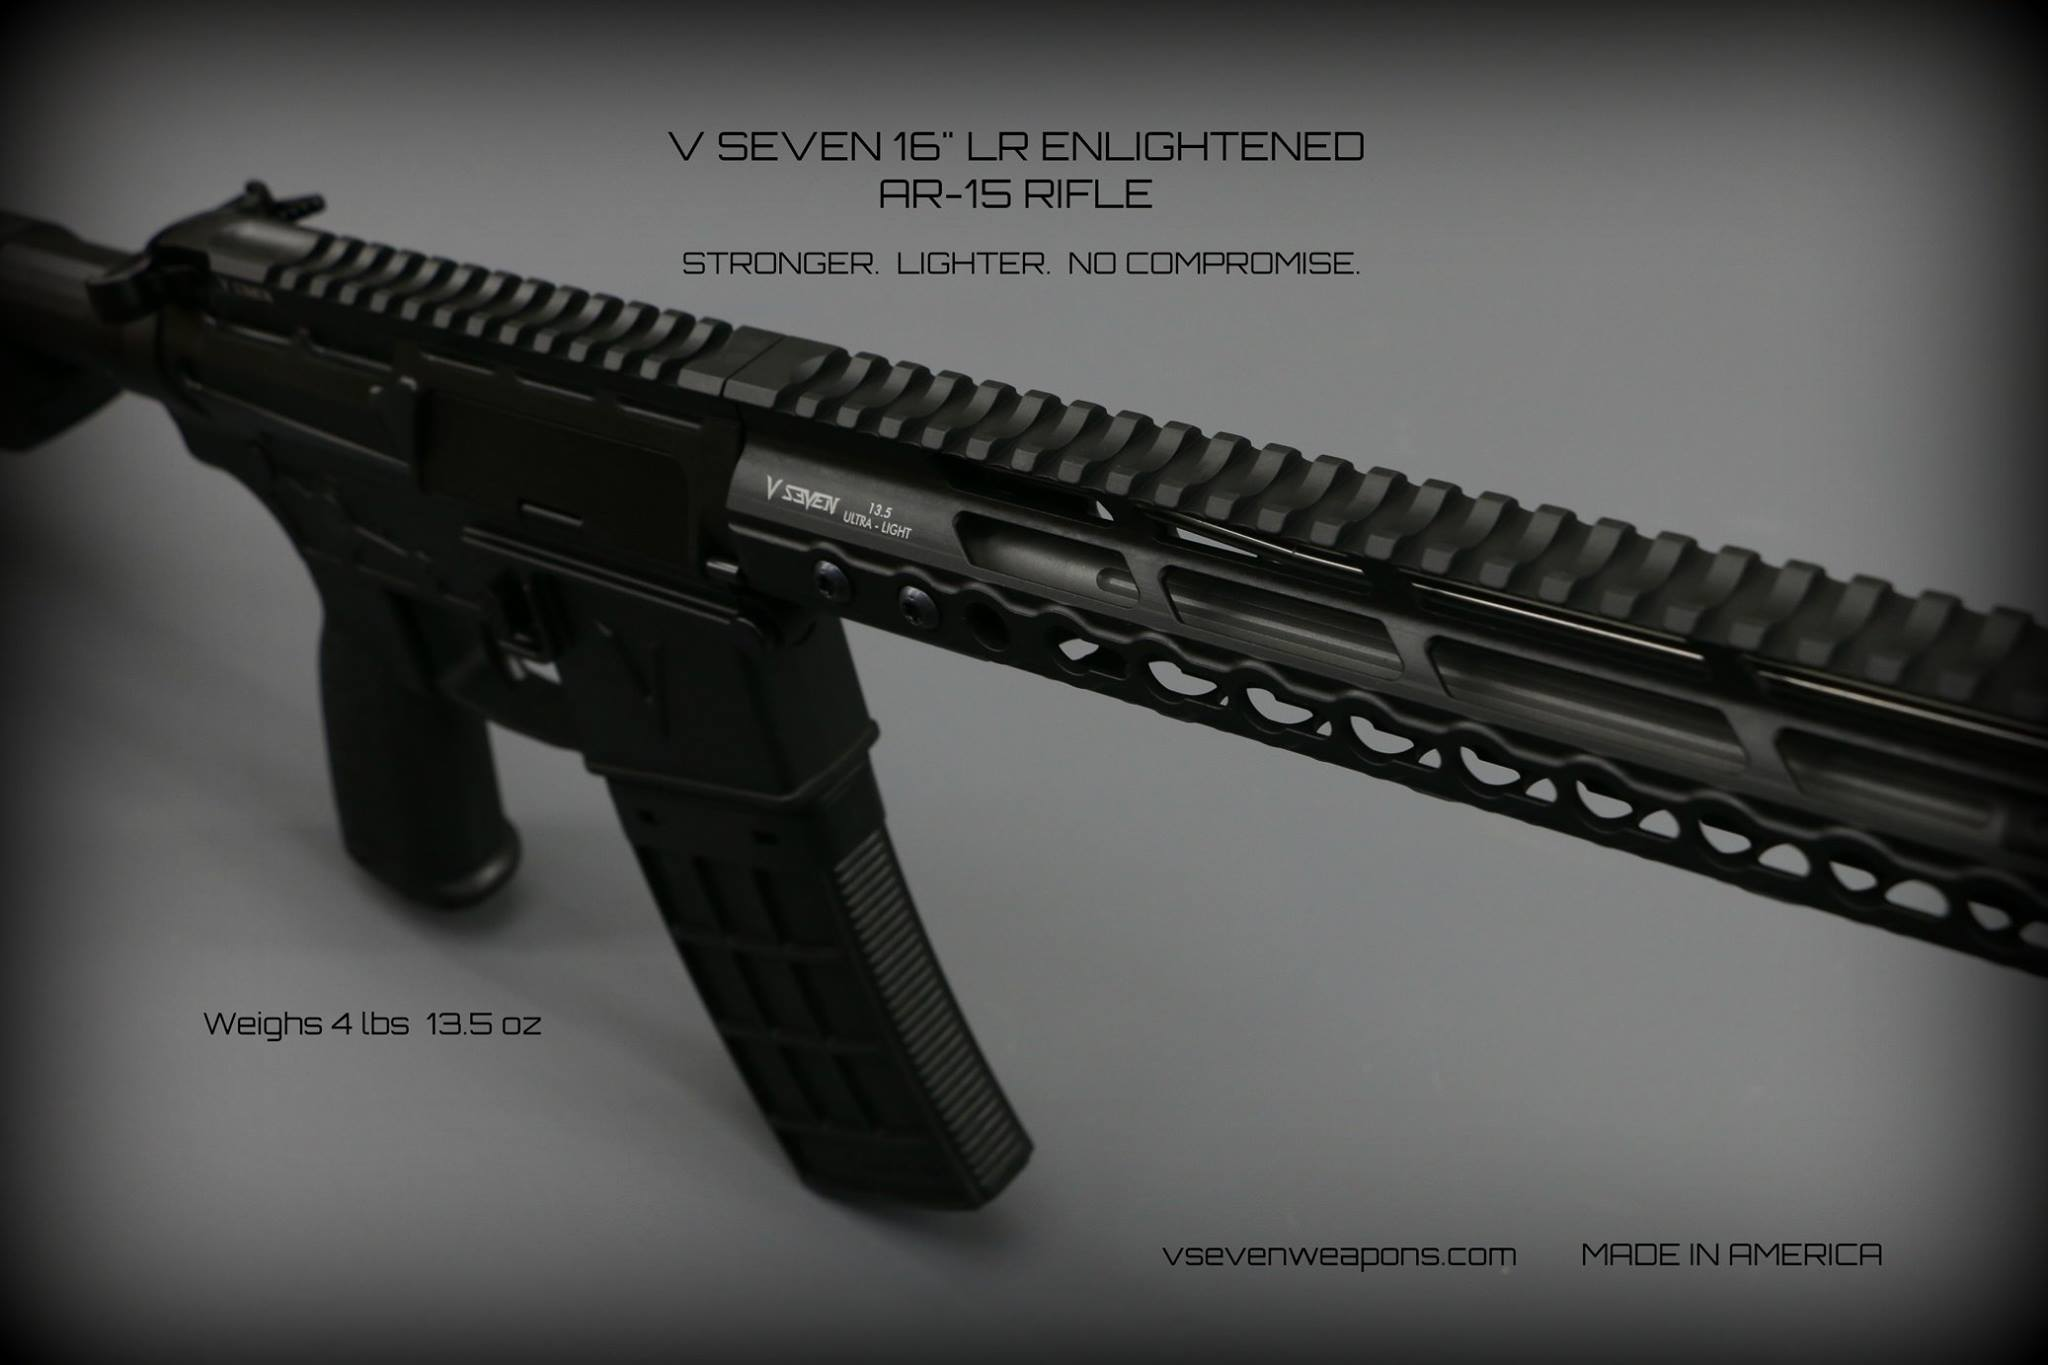 V7 Weapon Systems | Jerking the Trigger